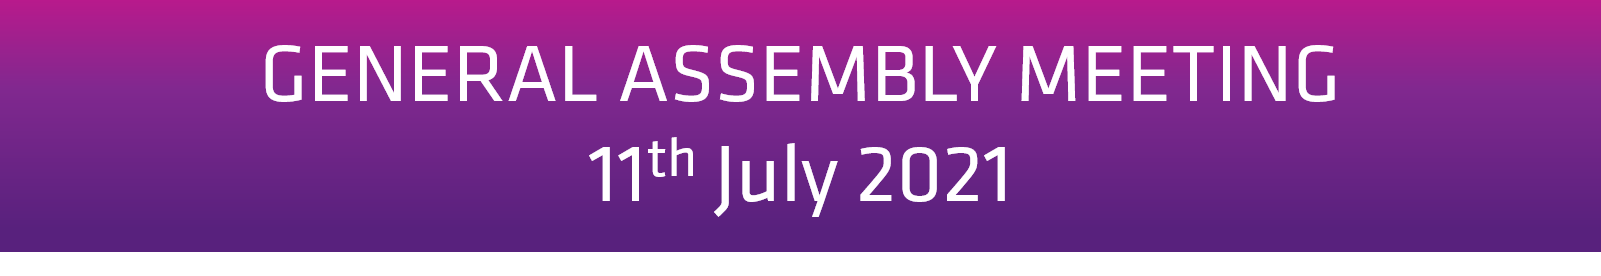 General Assembly Meeting 9th March 2021